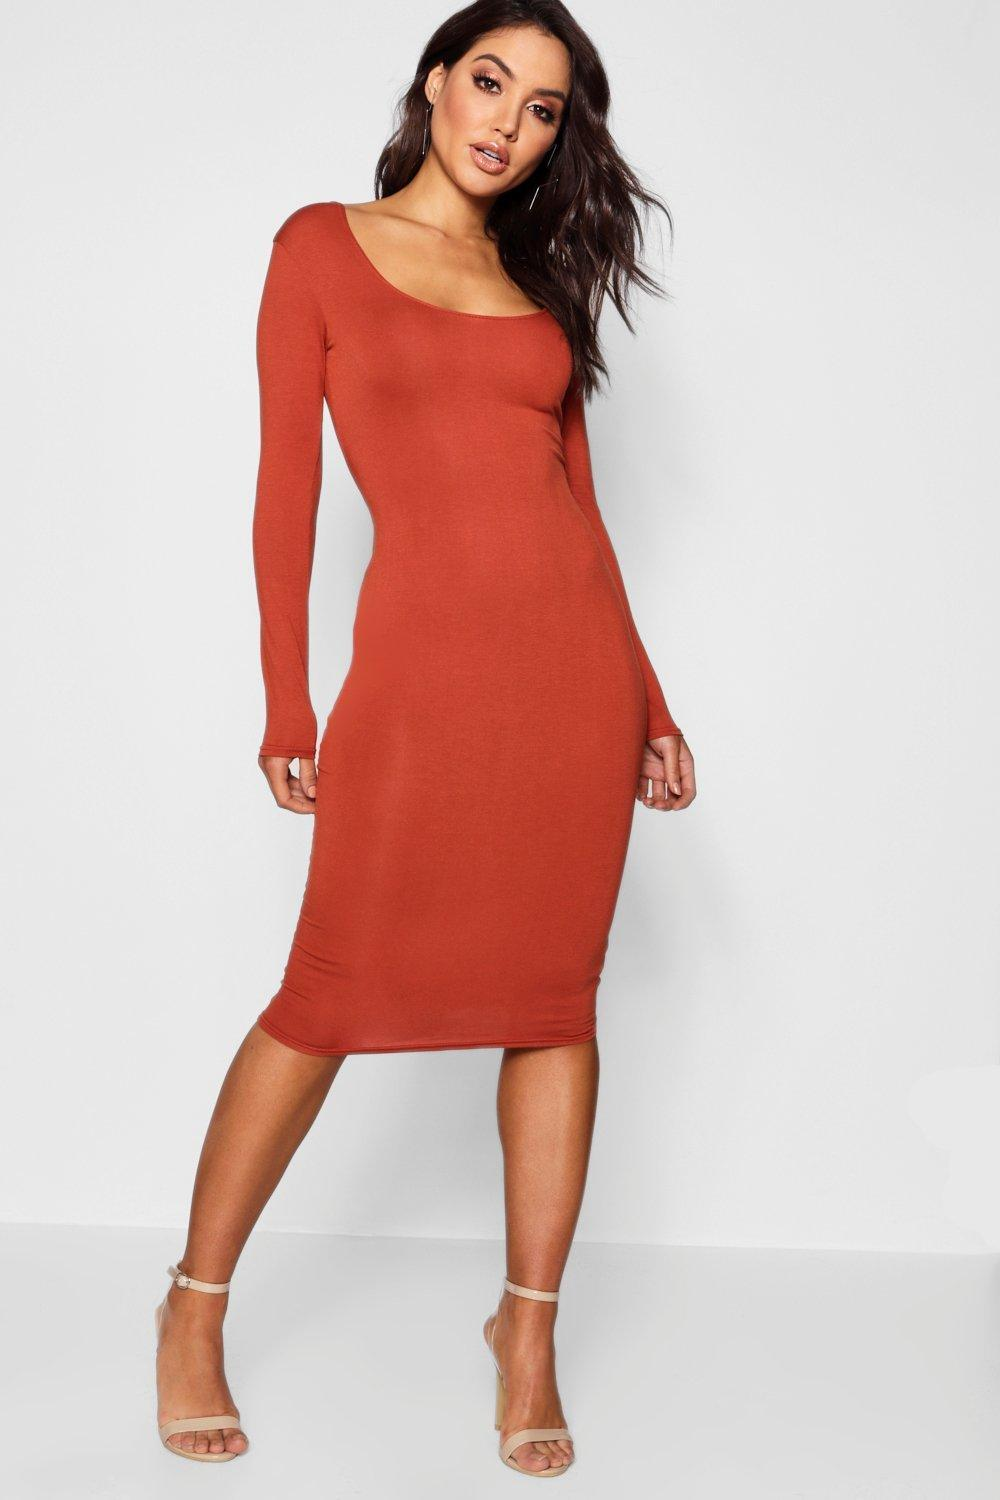 113f322dd572 ... Square Neck Long Sleeved Bodycon Dress - Lyst · Visit Boohoo. Tap to  visit site